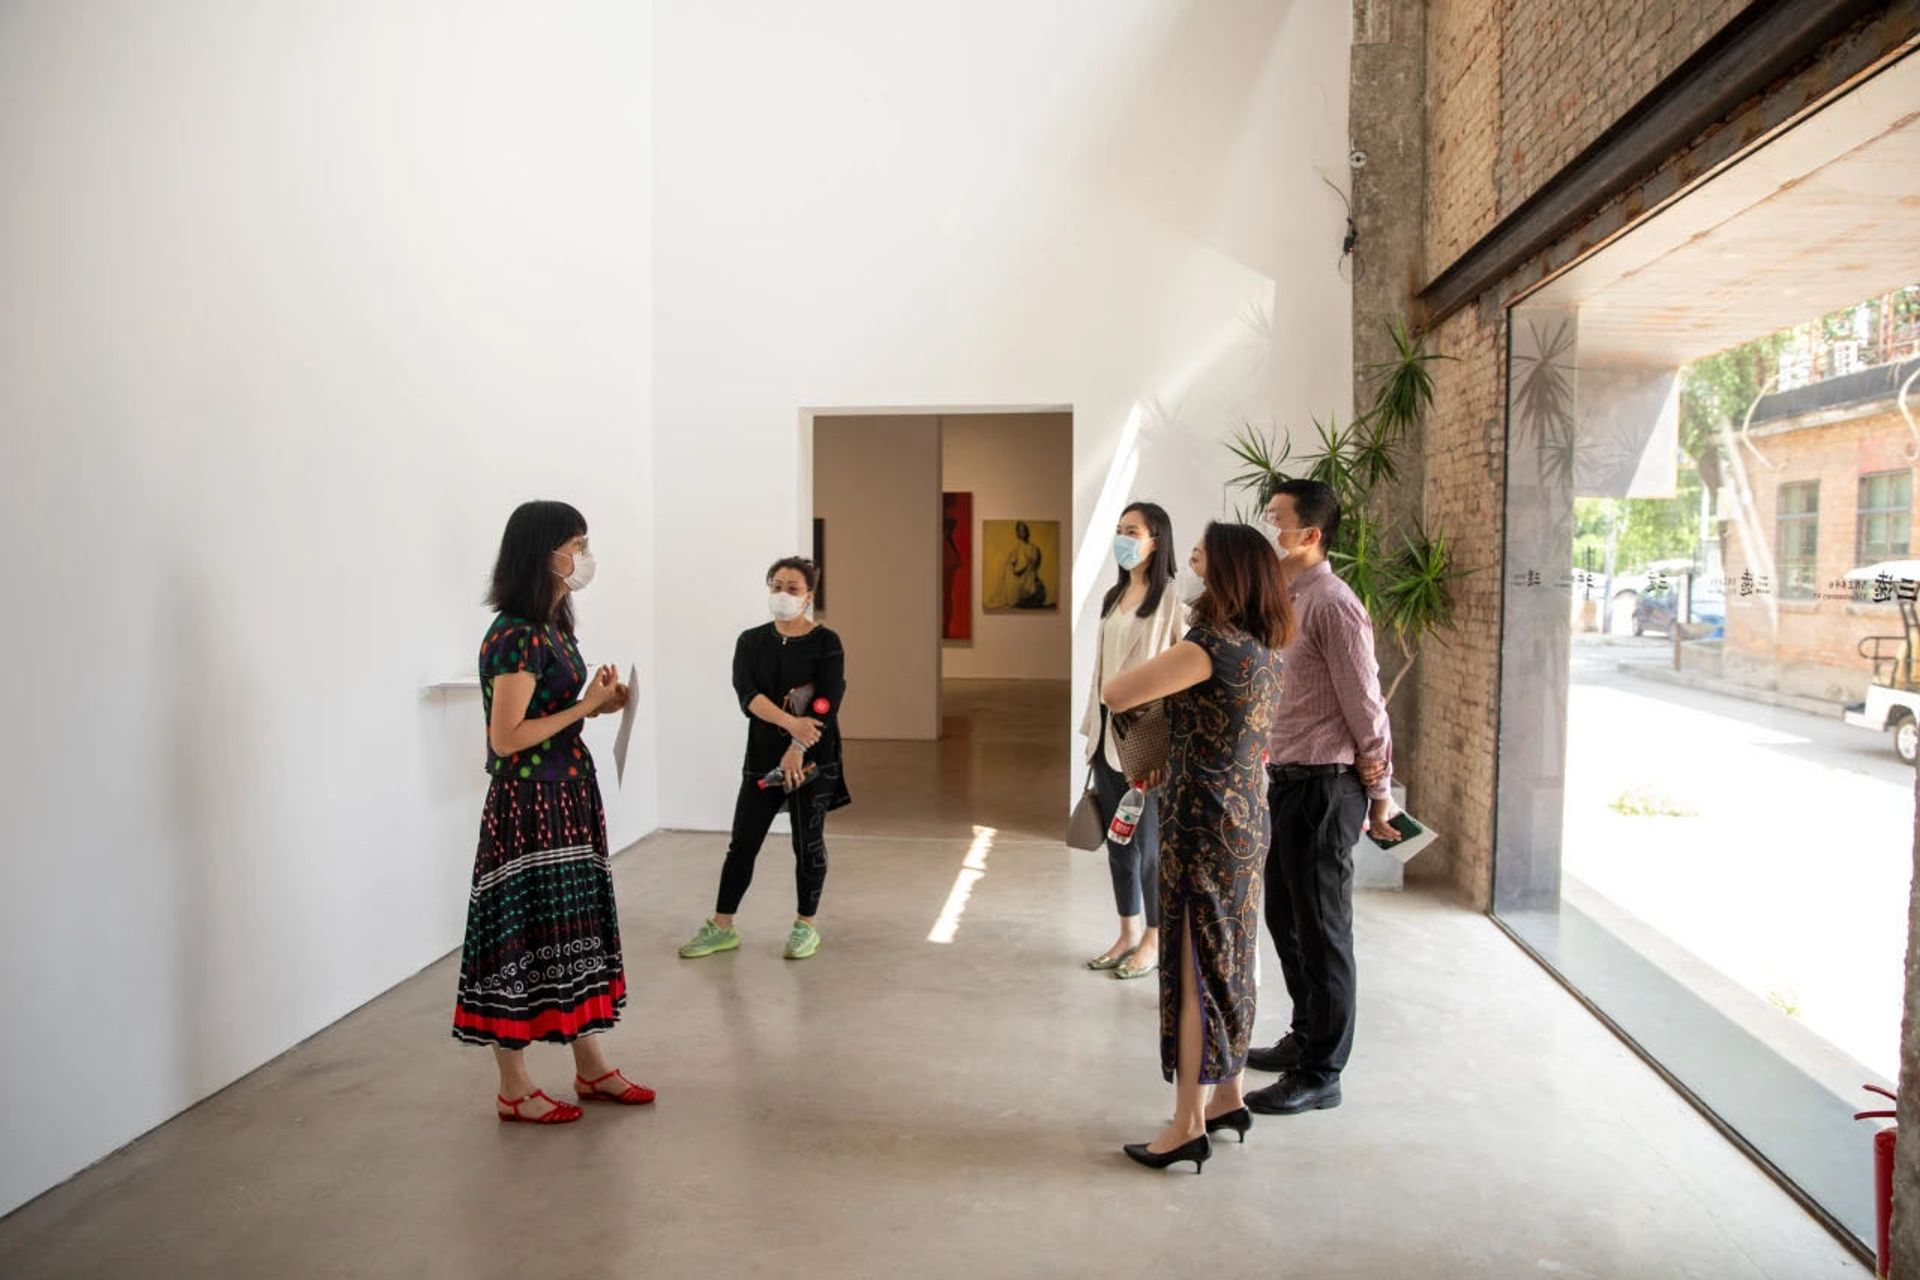 Visitors tour one of the exhibitions during GWBJ Courtesy of Gallery Weekend Beijing